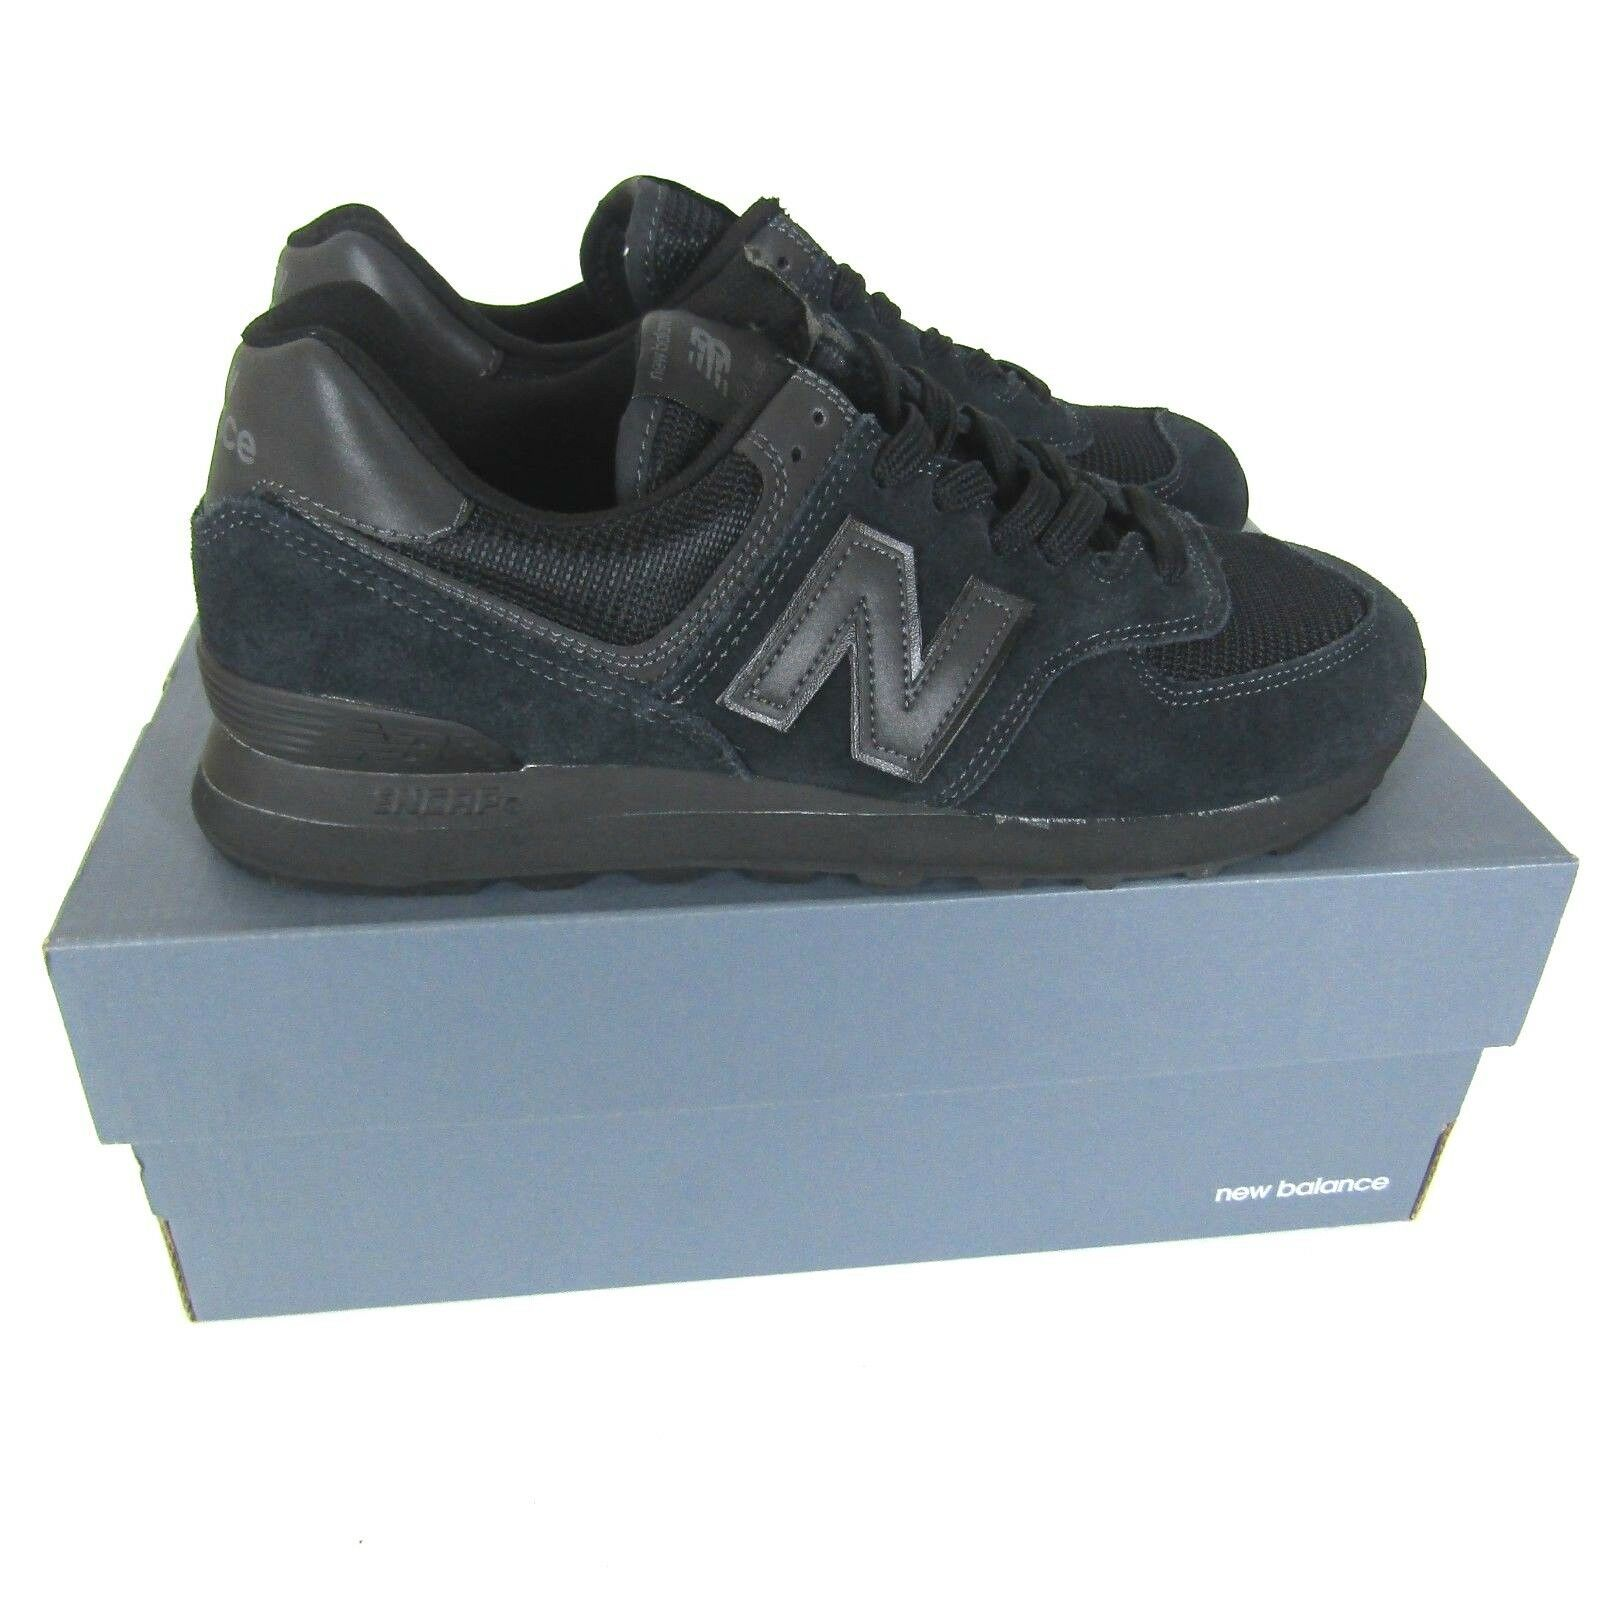 New Balance 574 Men's Sport Sneakers Walking Shoes ML574ETE Men's size 9